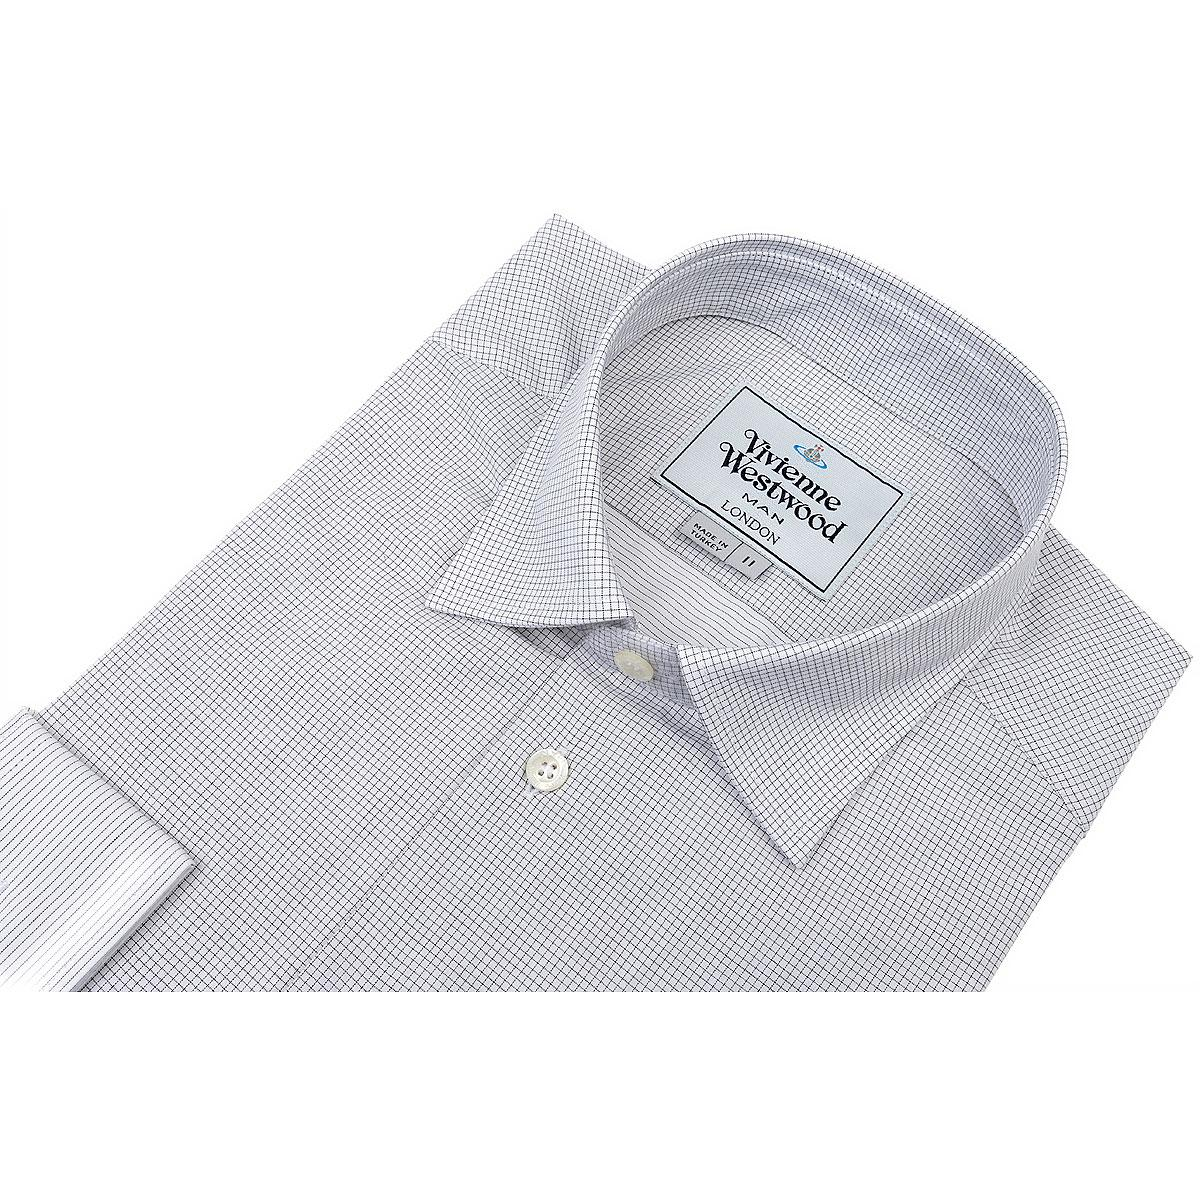 Lyst Vivienne Westwood Mens Shirts On Sale In White For Men